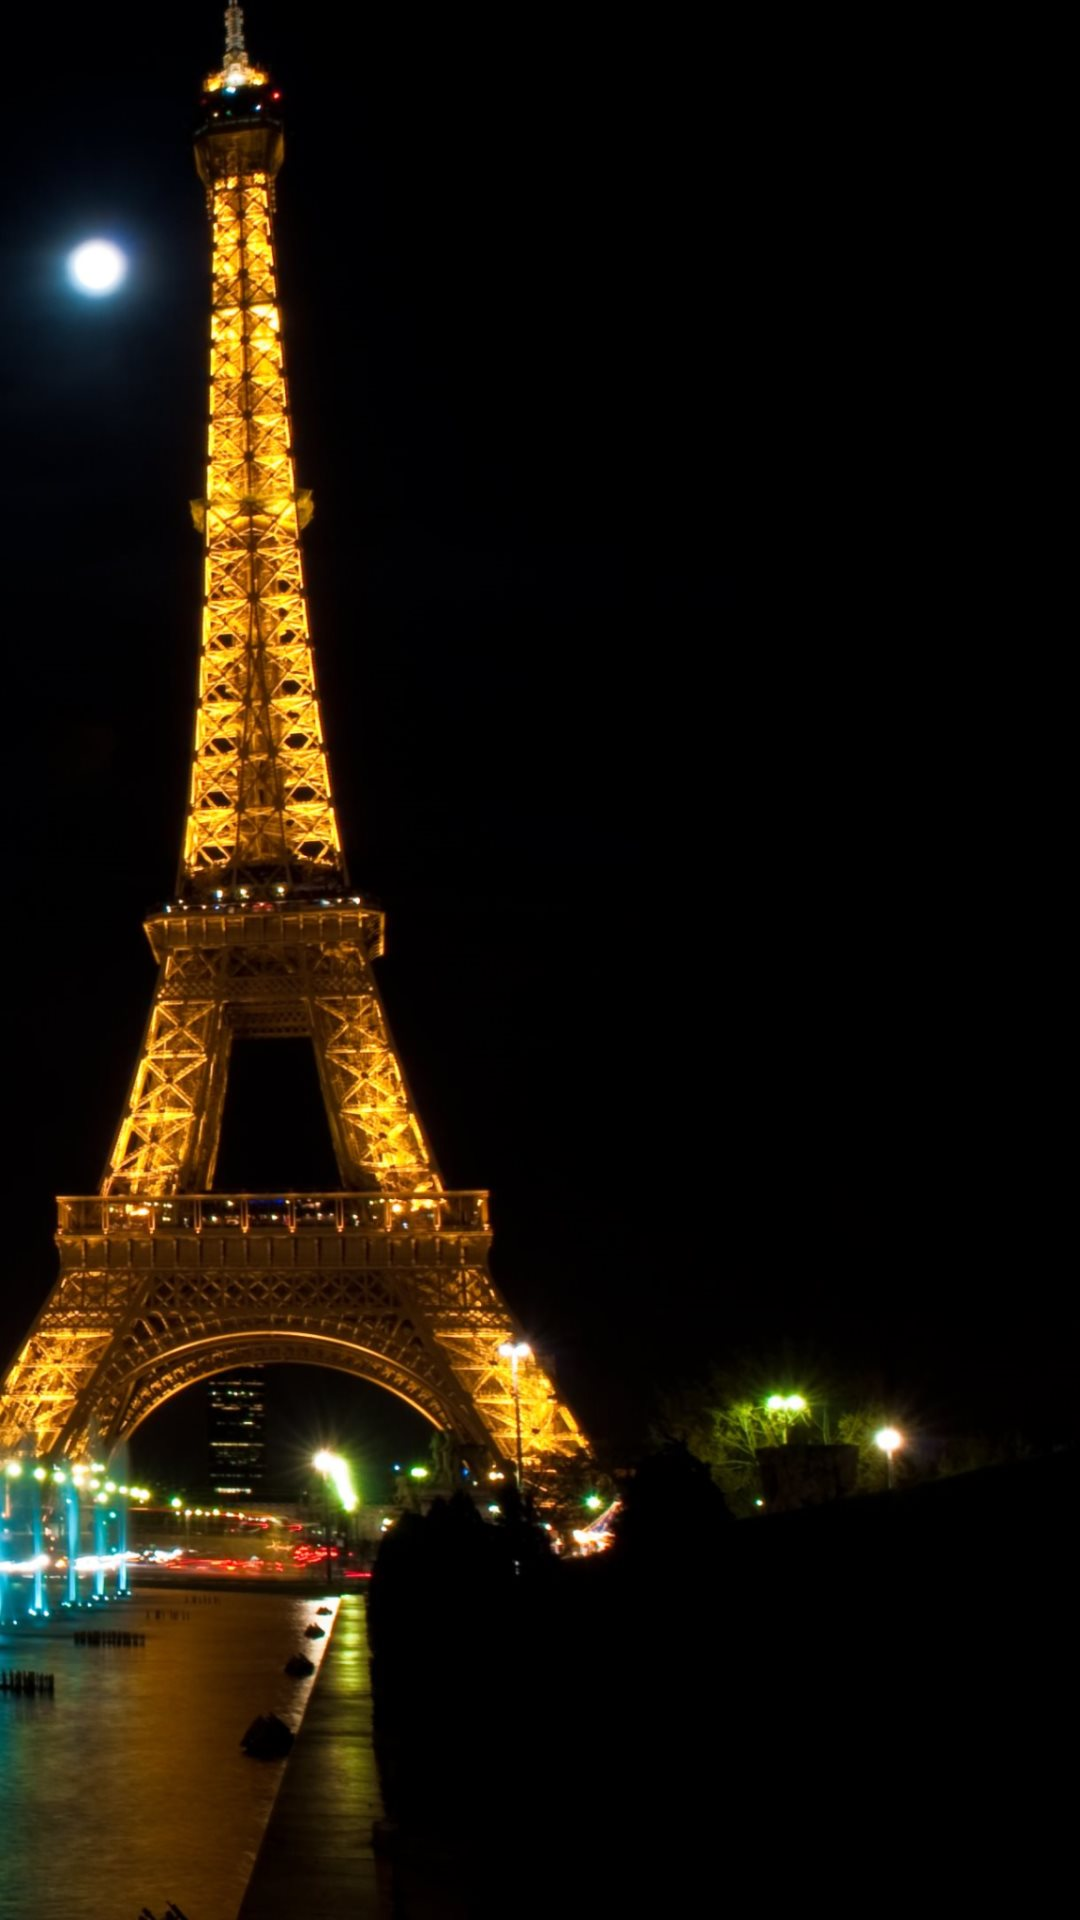 Wallpapers Wide With Quotes Paris At Night Tour Eiffel Hd Wallpapers 4k Macbook And